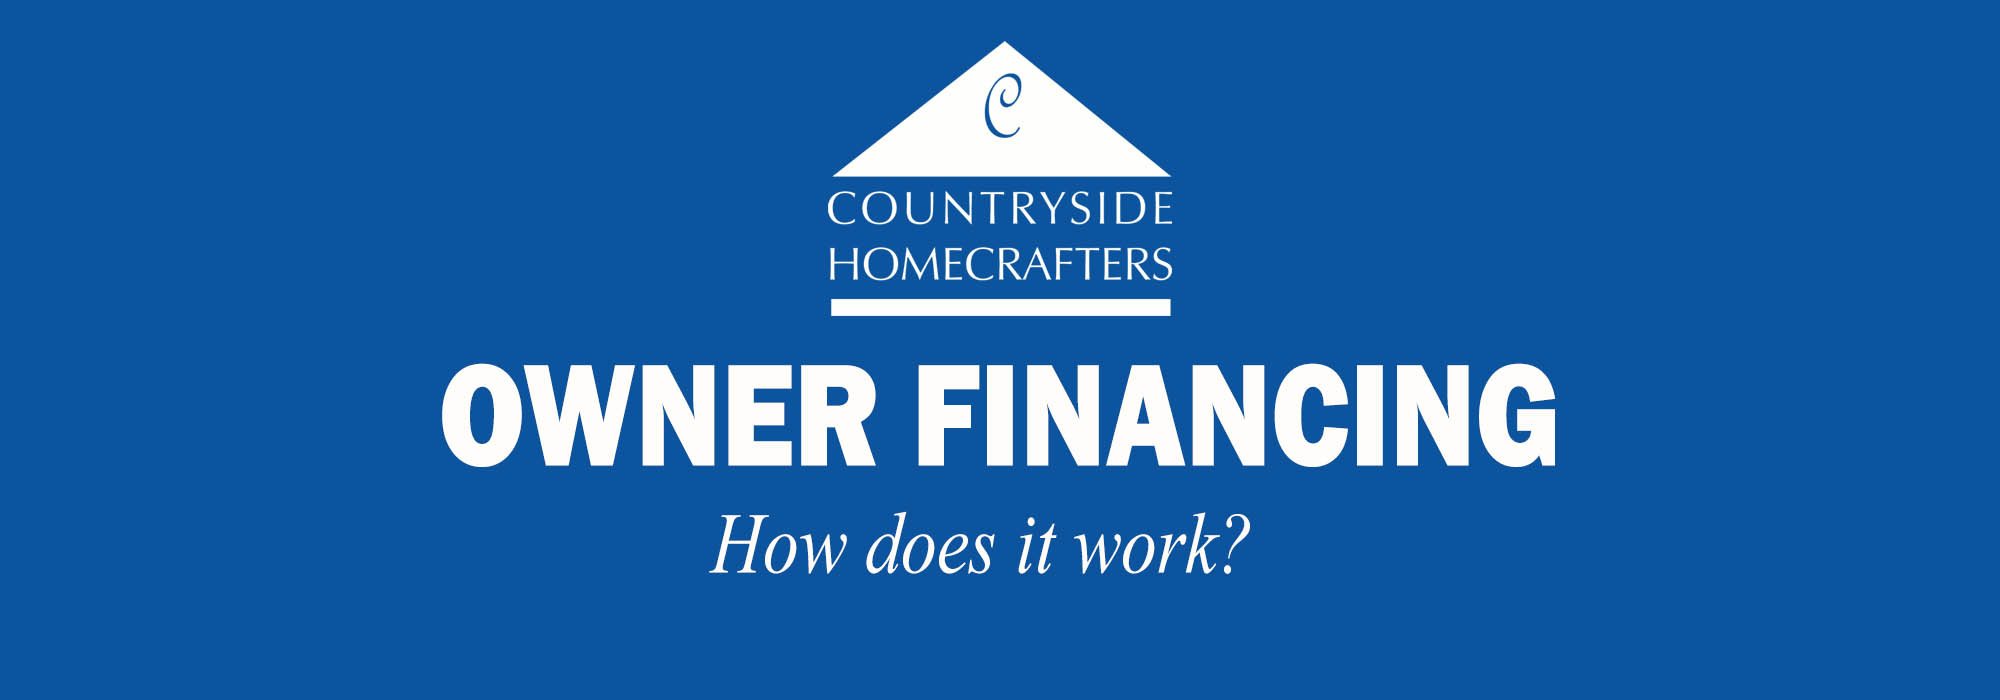 At Countryside, We Make Owning A Home Easy! Owner Financing